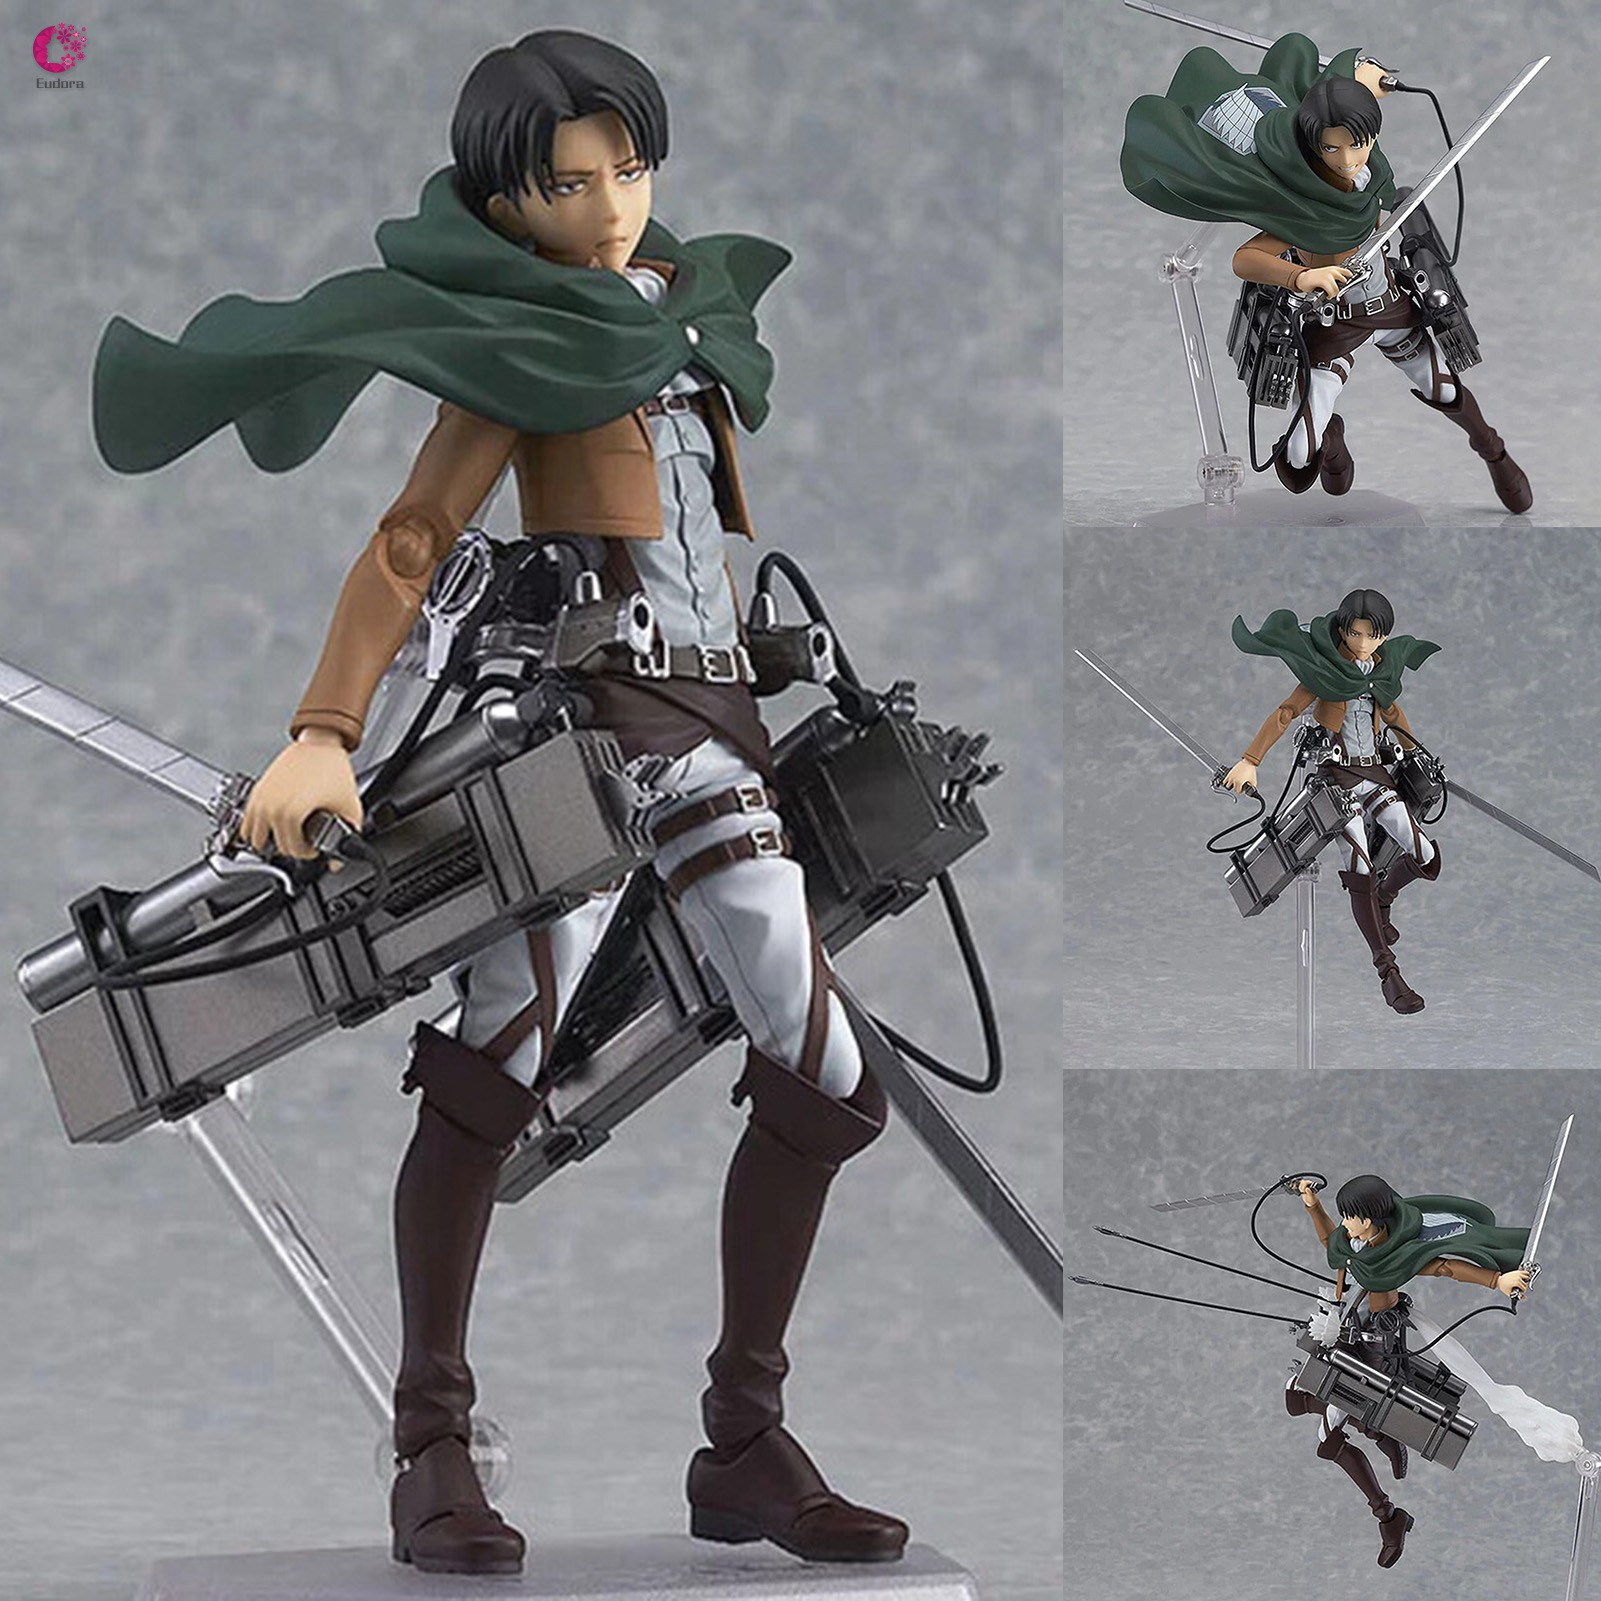 Attack on Titan Levi Ackerman PVC Figure Anime Action Figure Model Toy for Kid Adult